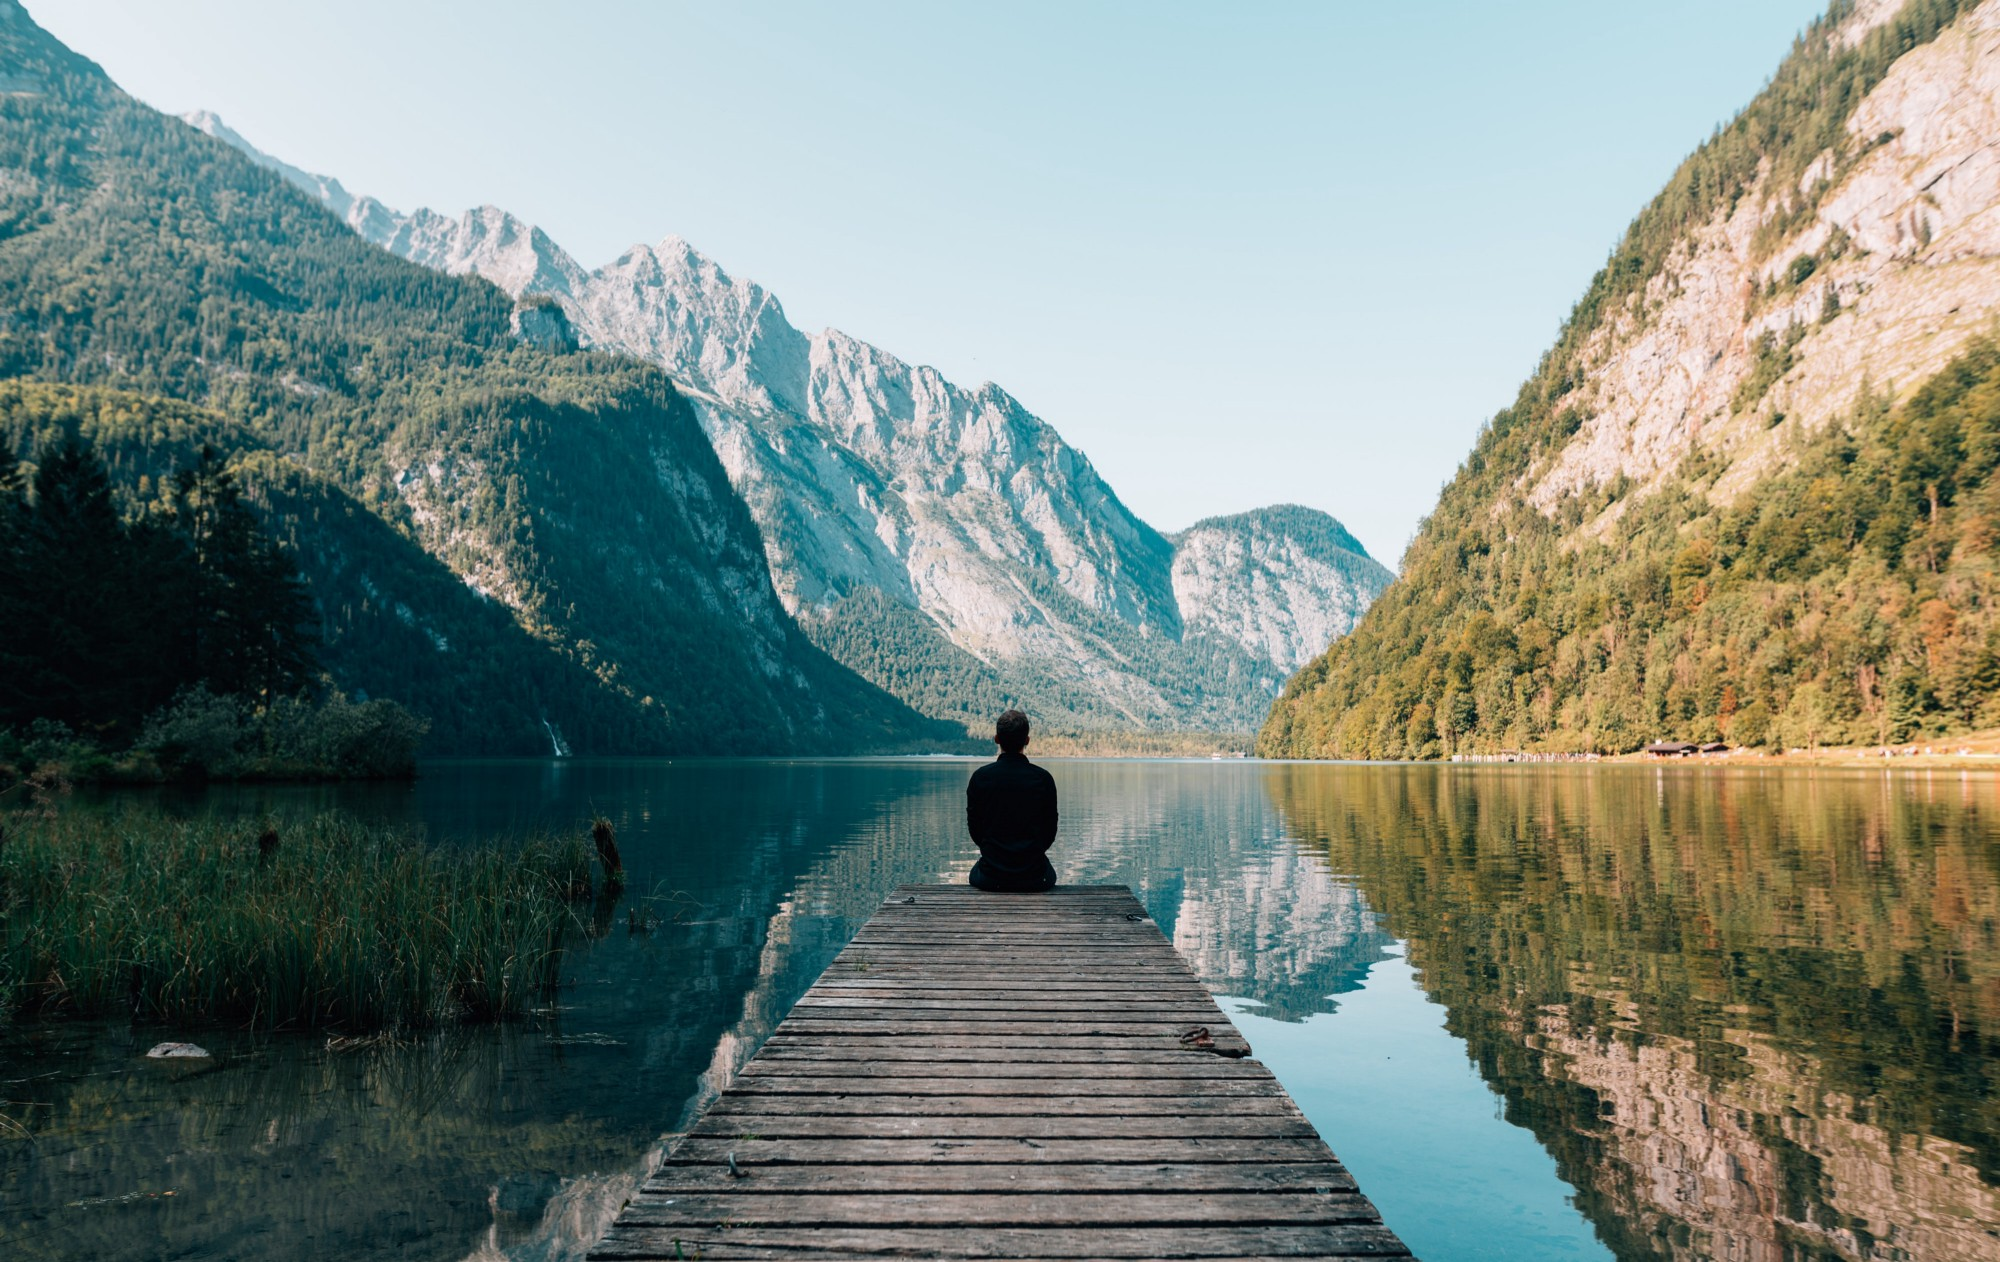 Lake view with mountains in the background. Man sitting on dock alone.